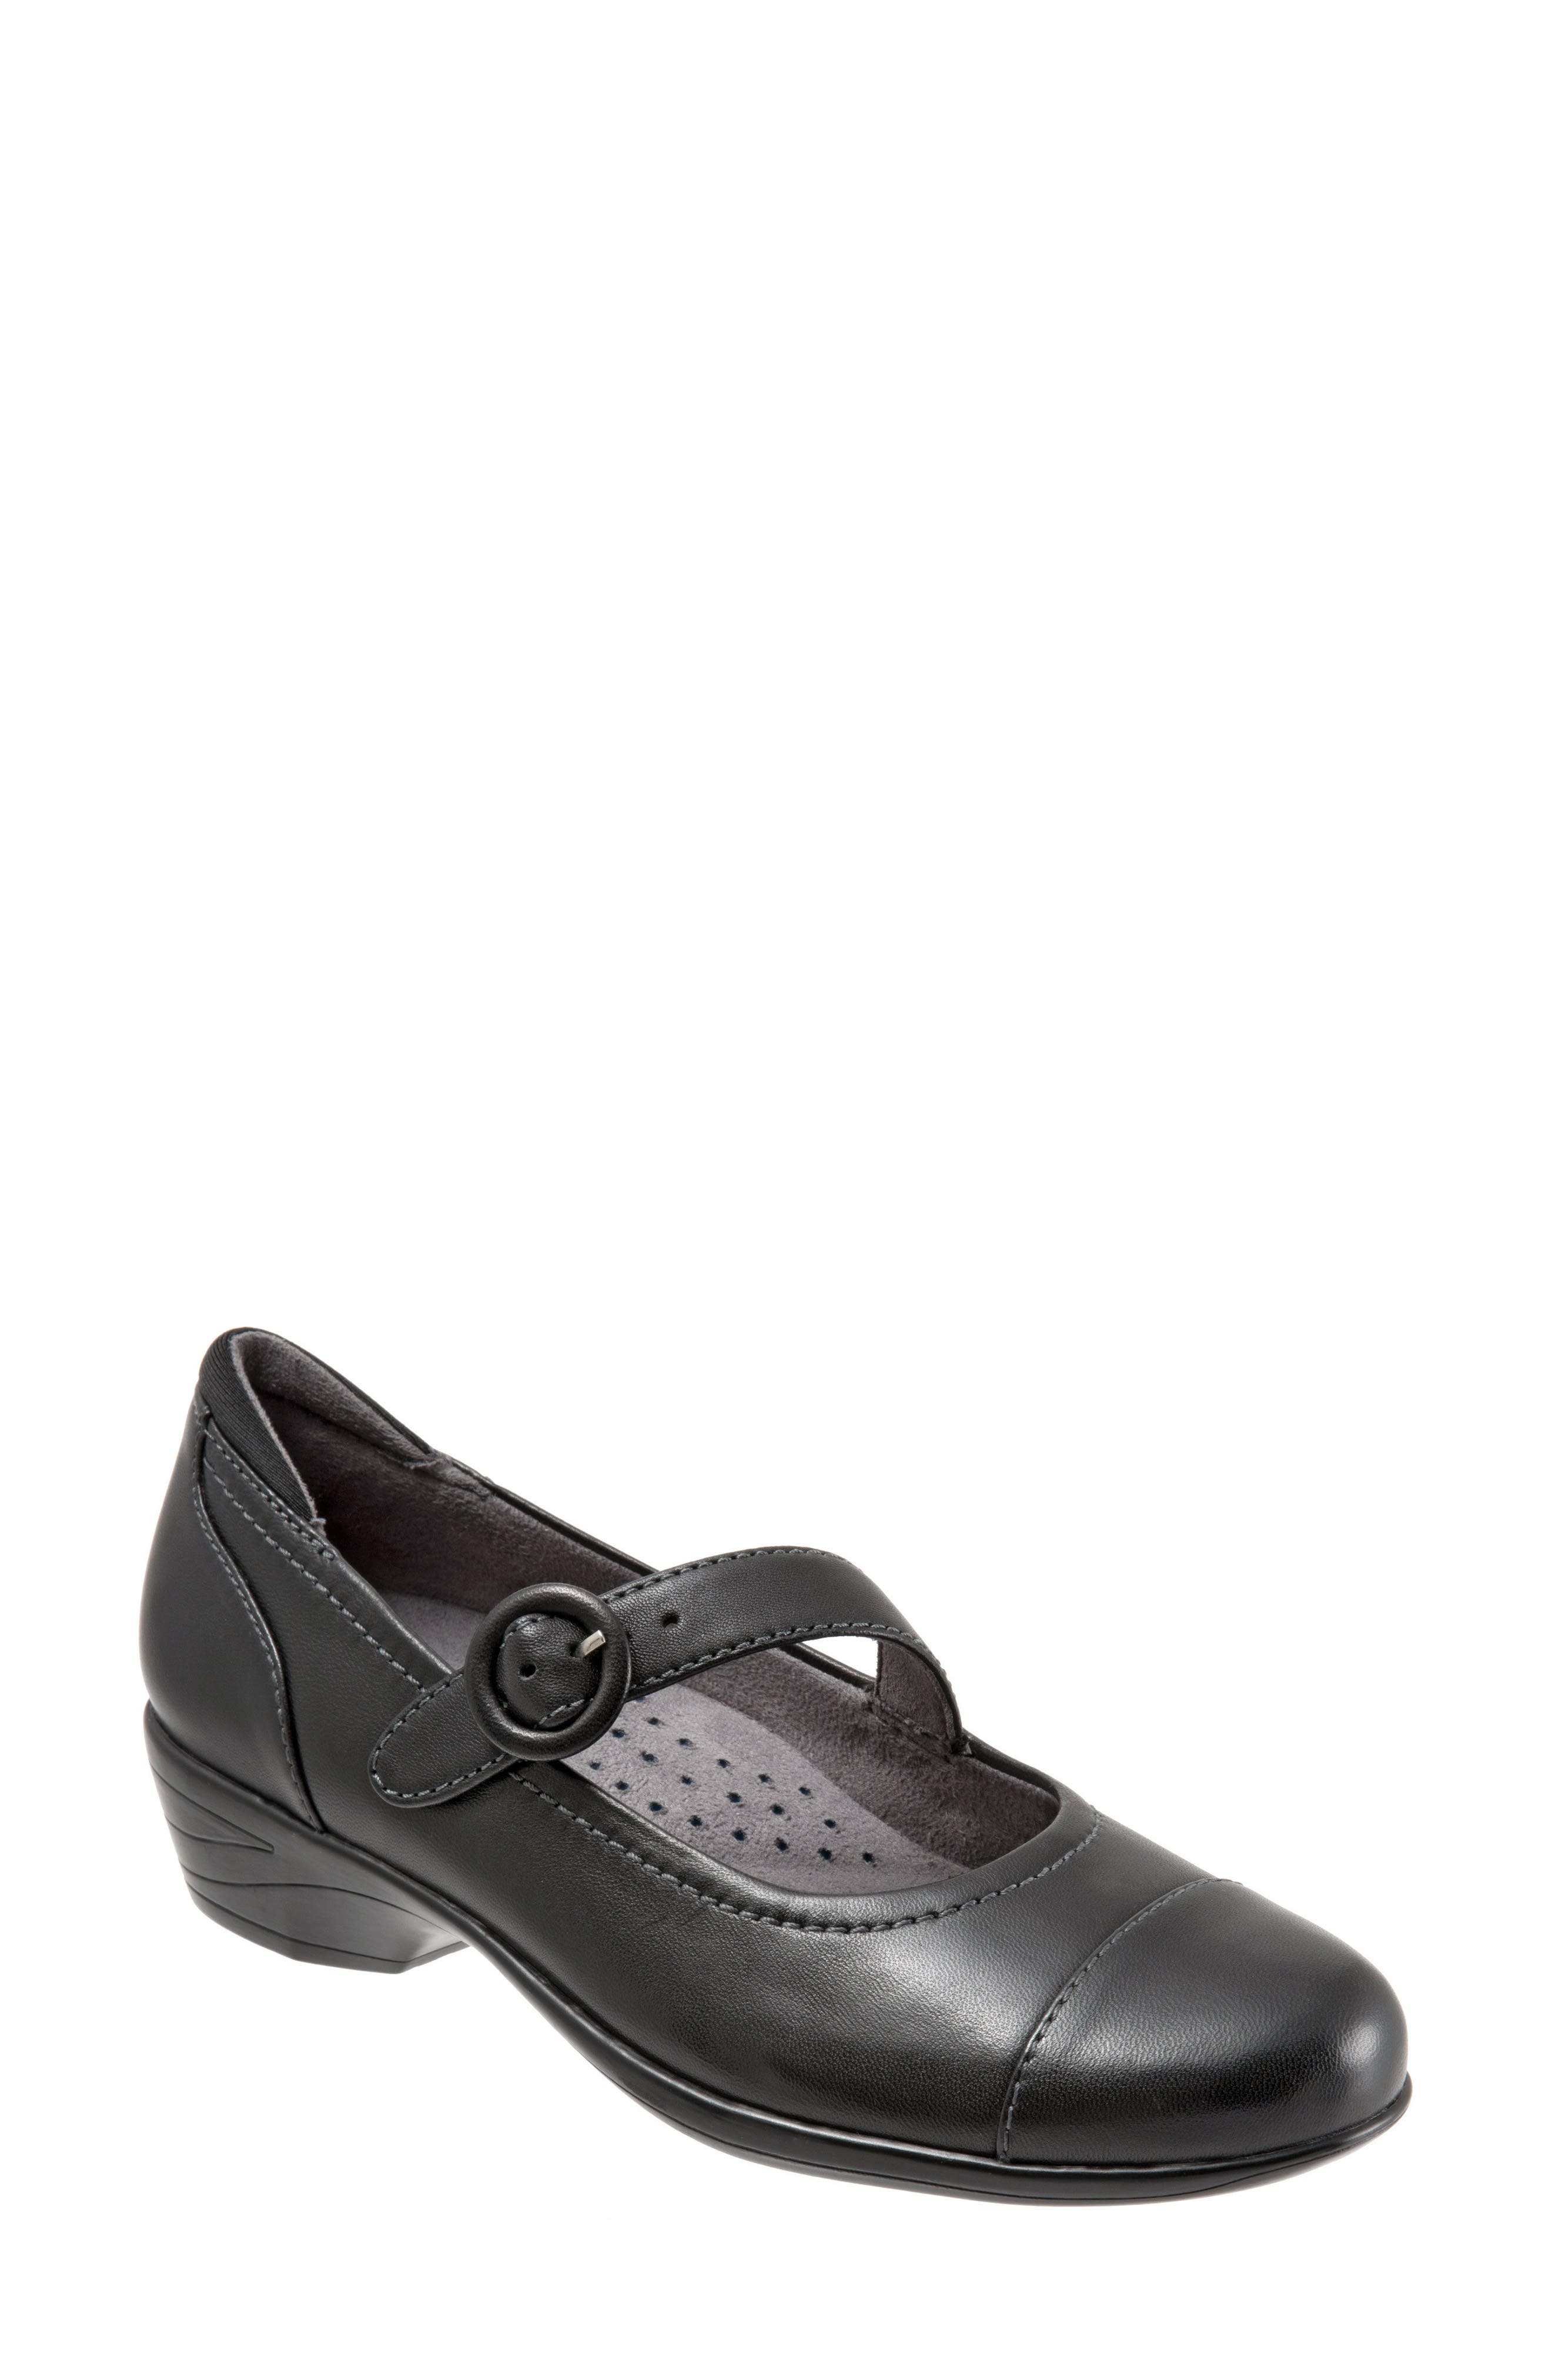 Chatsworth Mary Jane Pump,                         Main,                         color, Black Leather